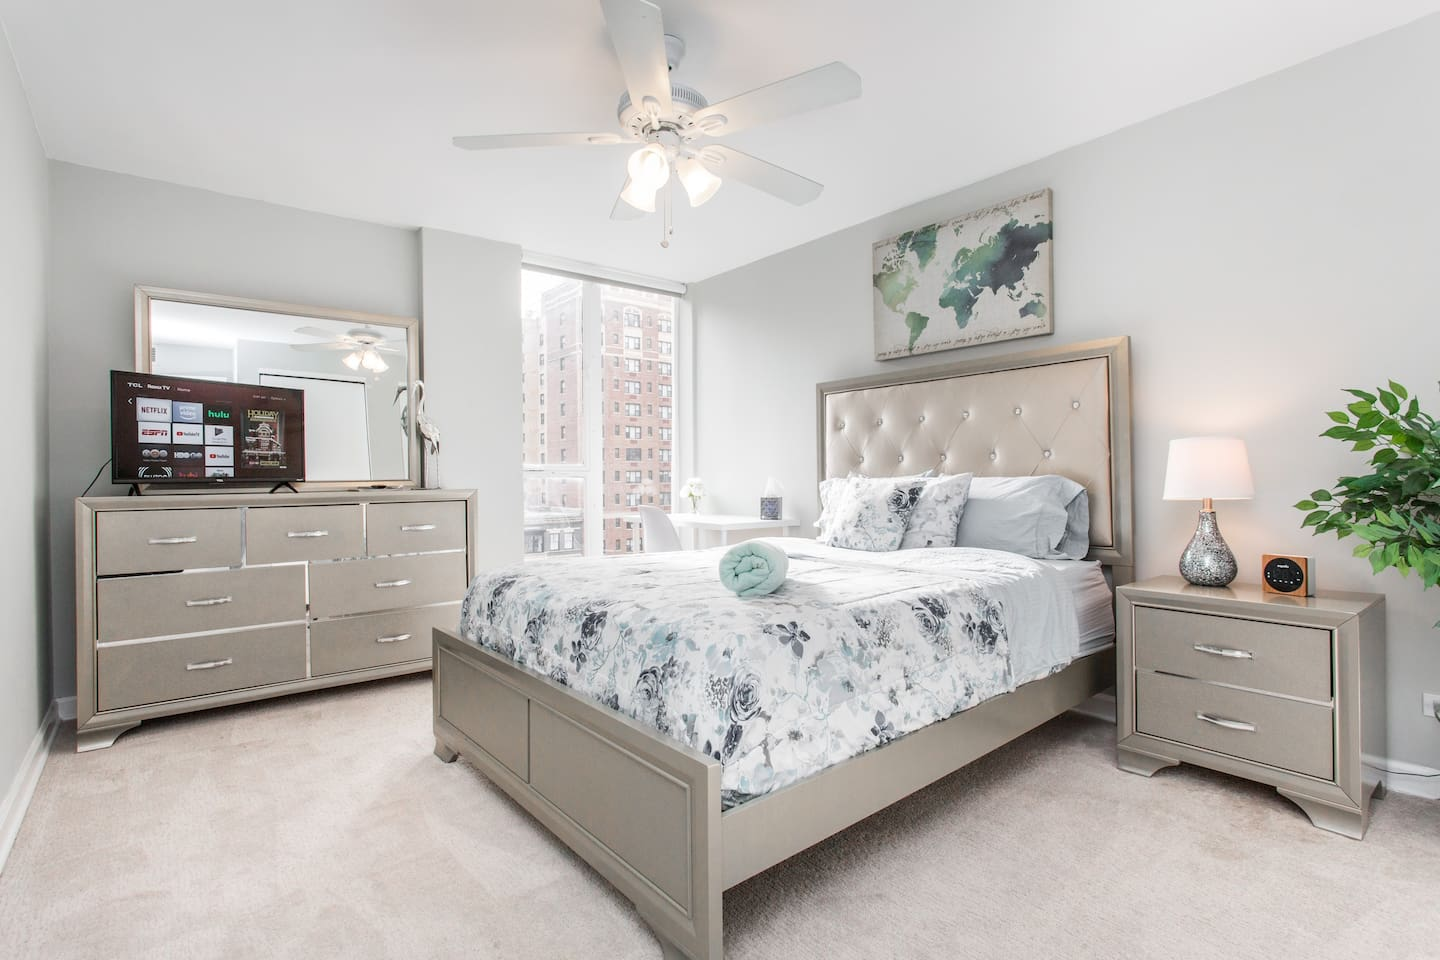 Enjoy your private bedroom with an extremely comfy queen bed, desk space, and Smart Tv.